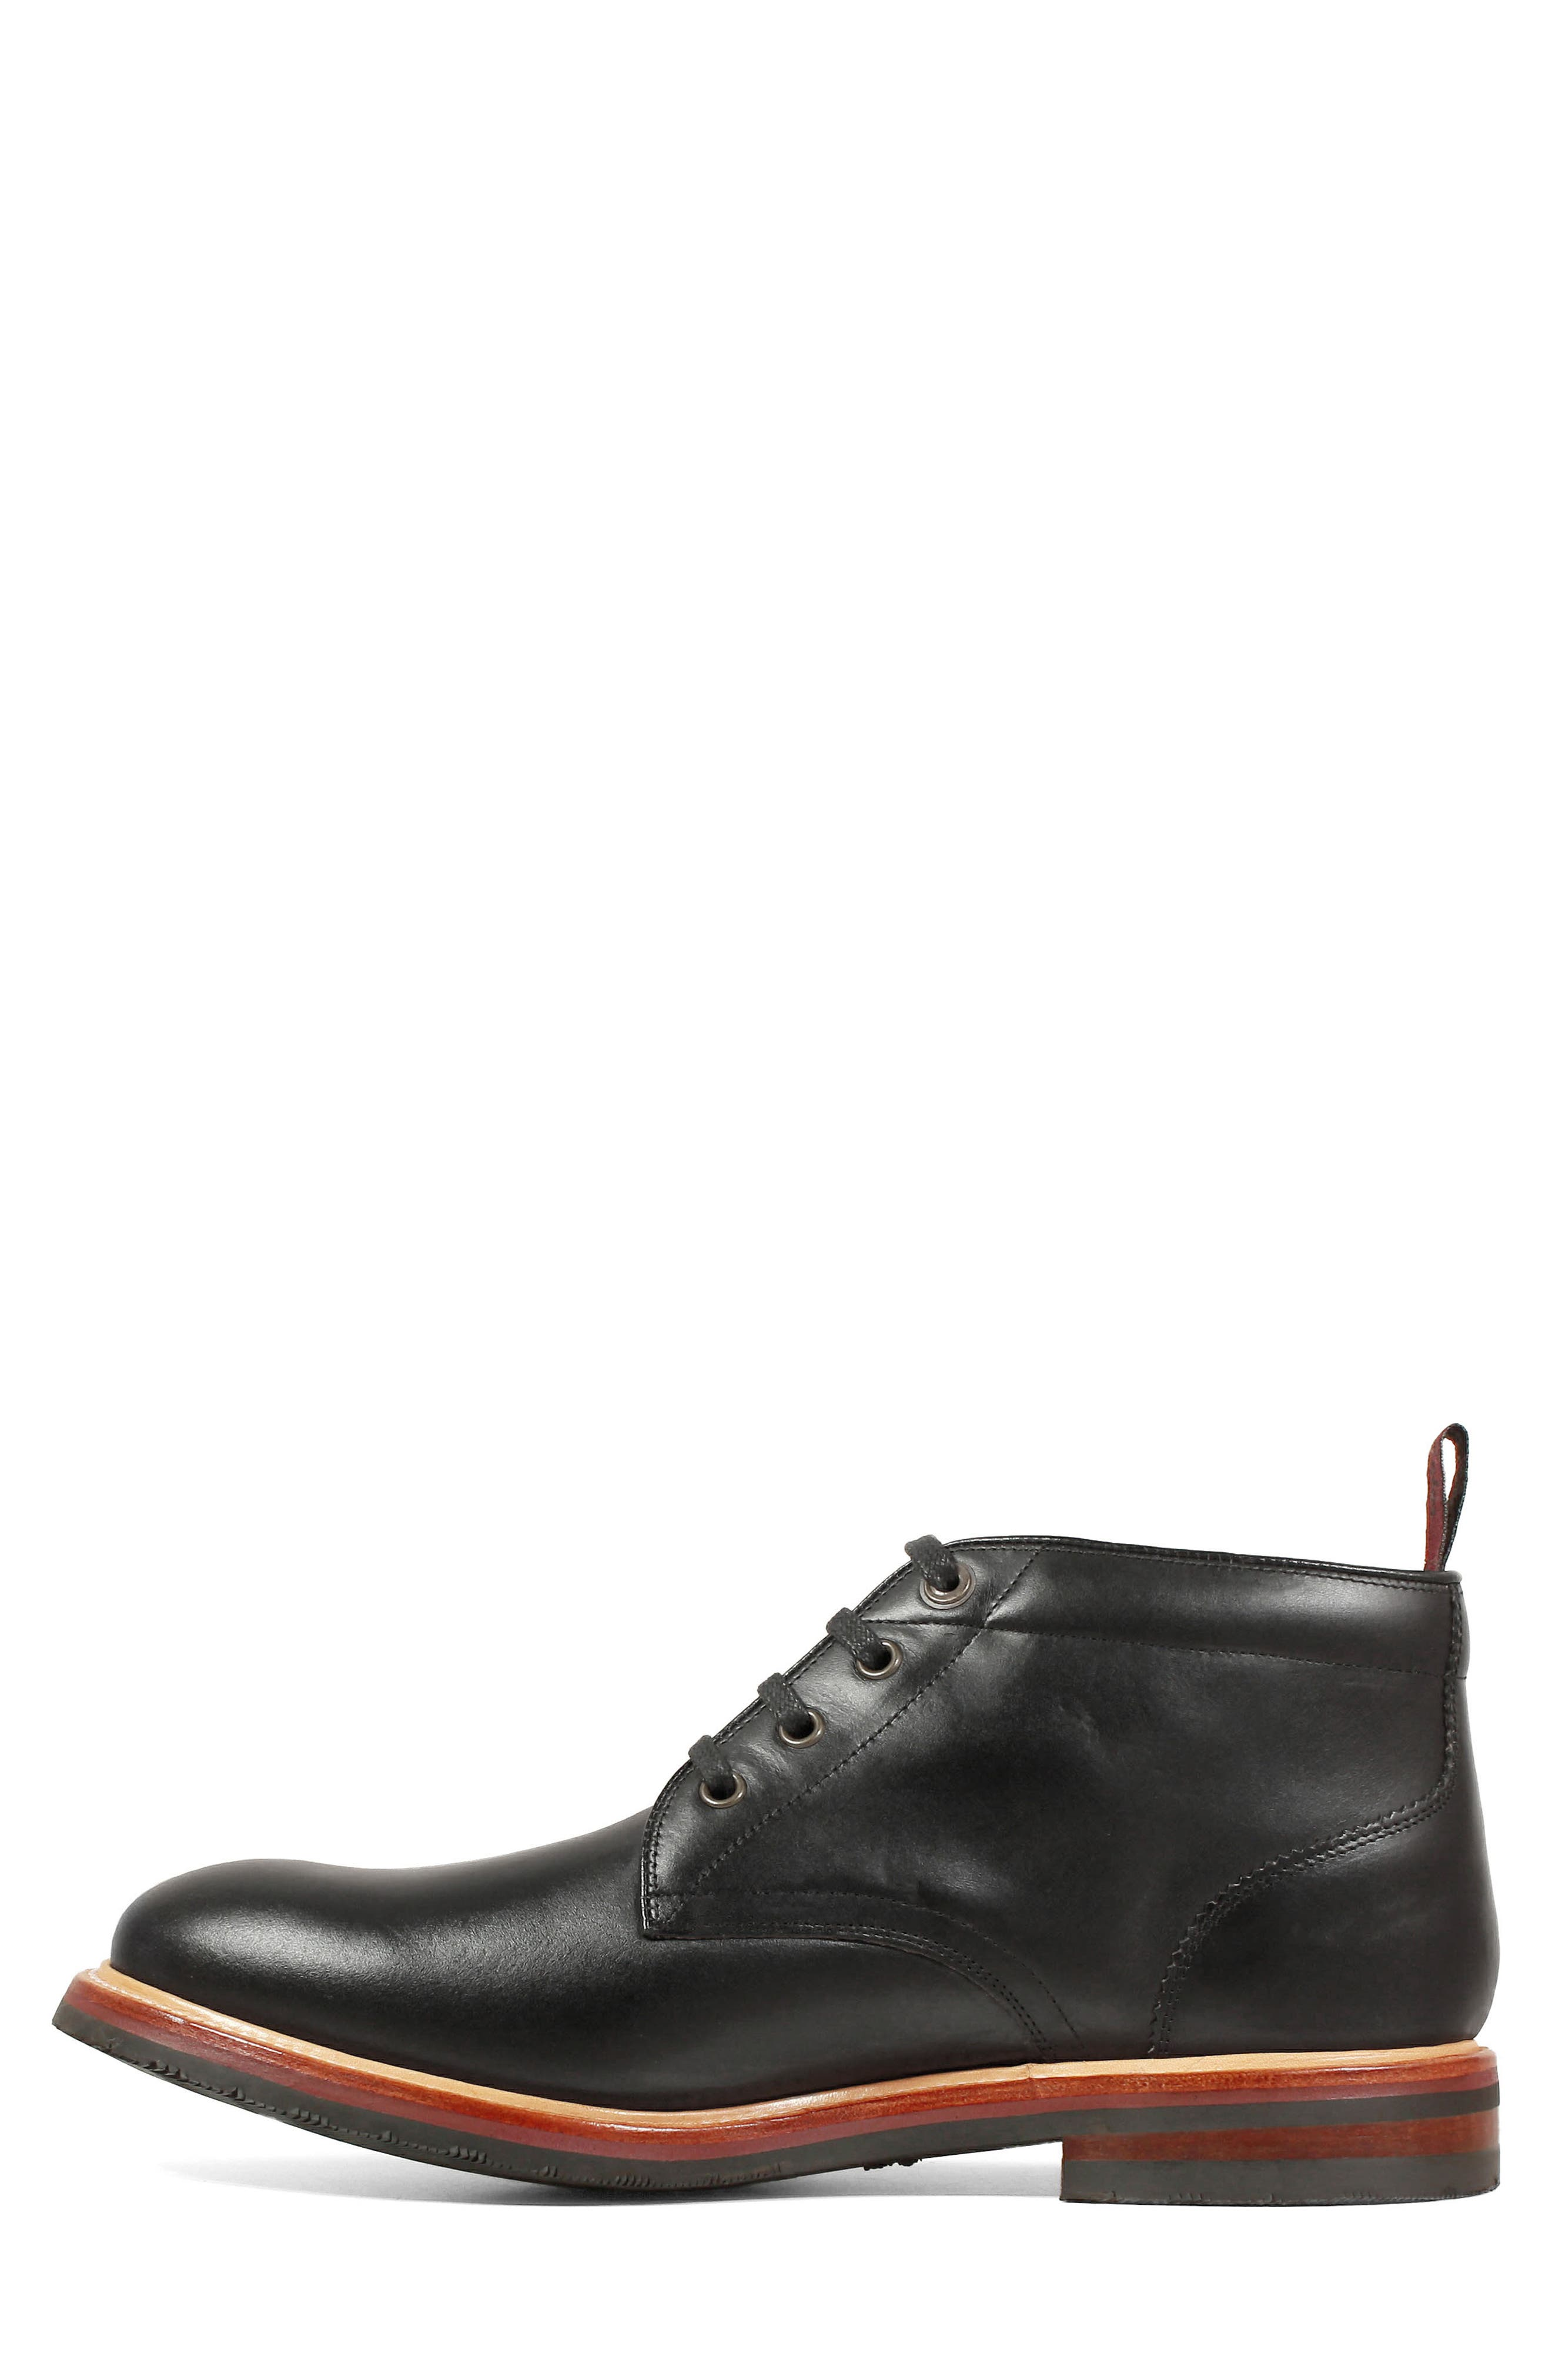 Foundry Leather Boot,                             Alternate thumbnail 7, color,                             BLACK LEATHER